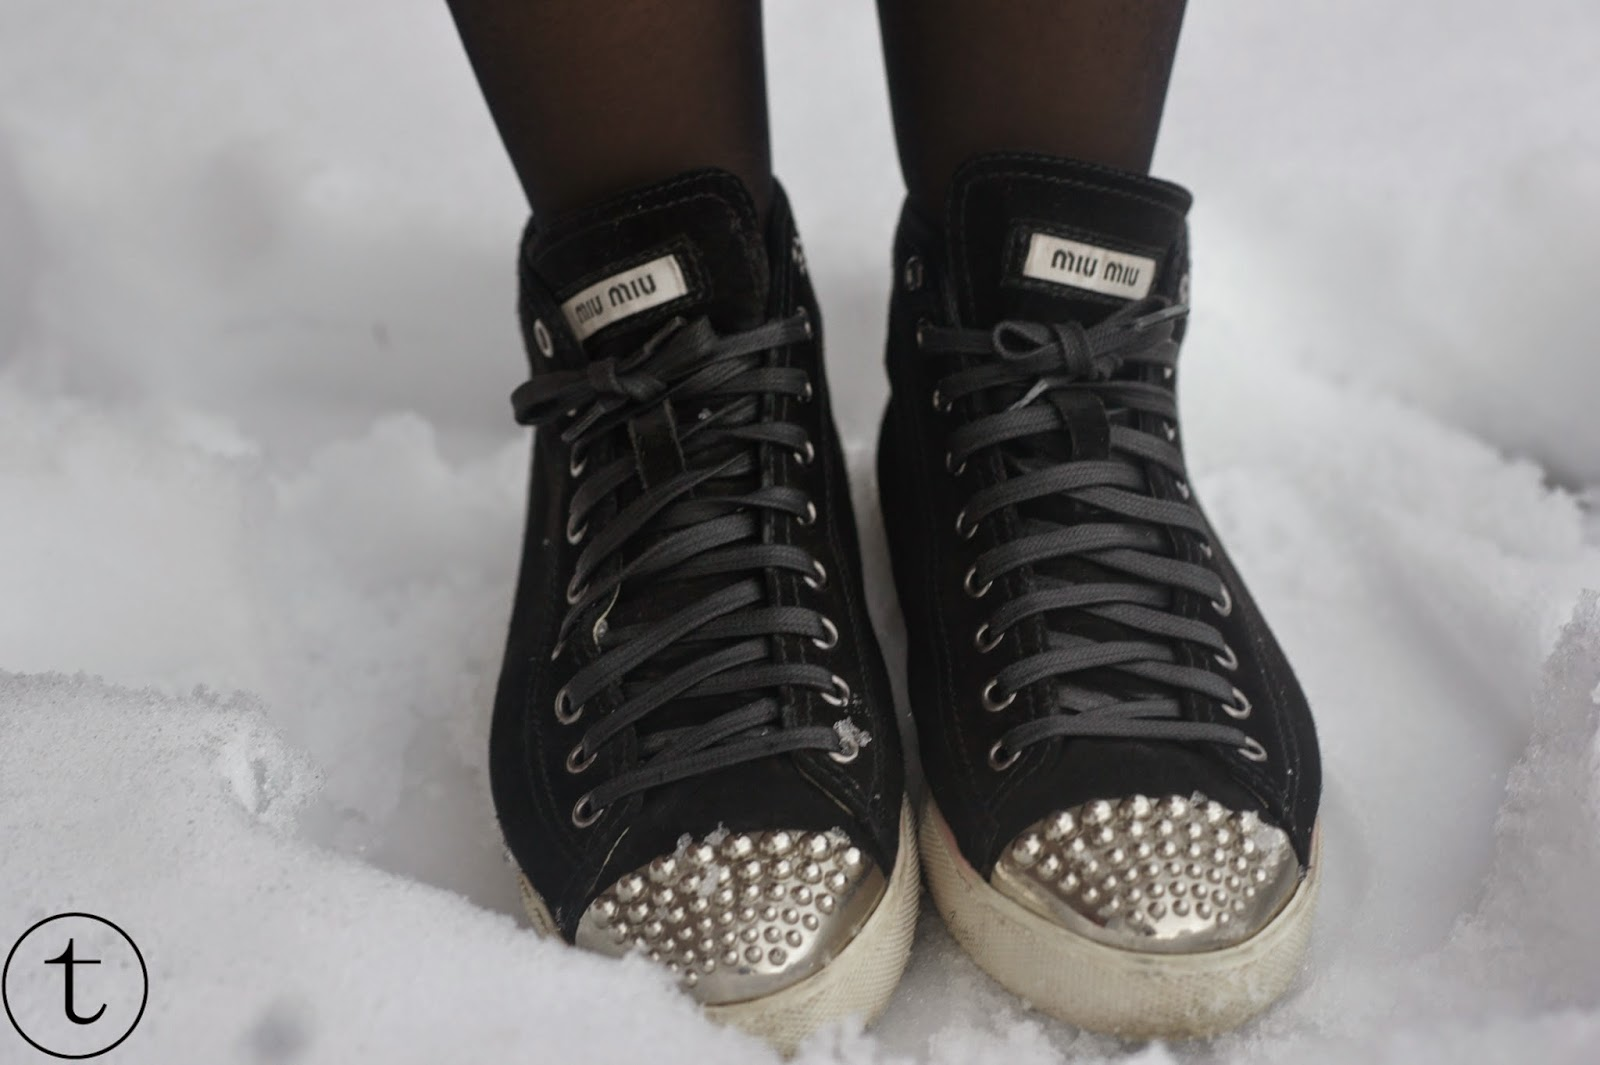 miu miu sneakers with studs